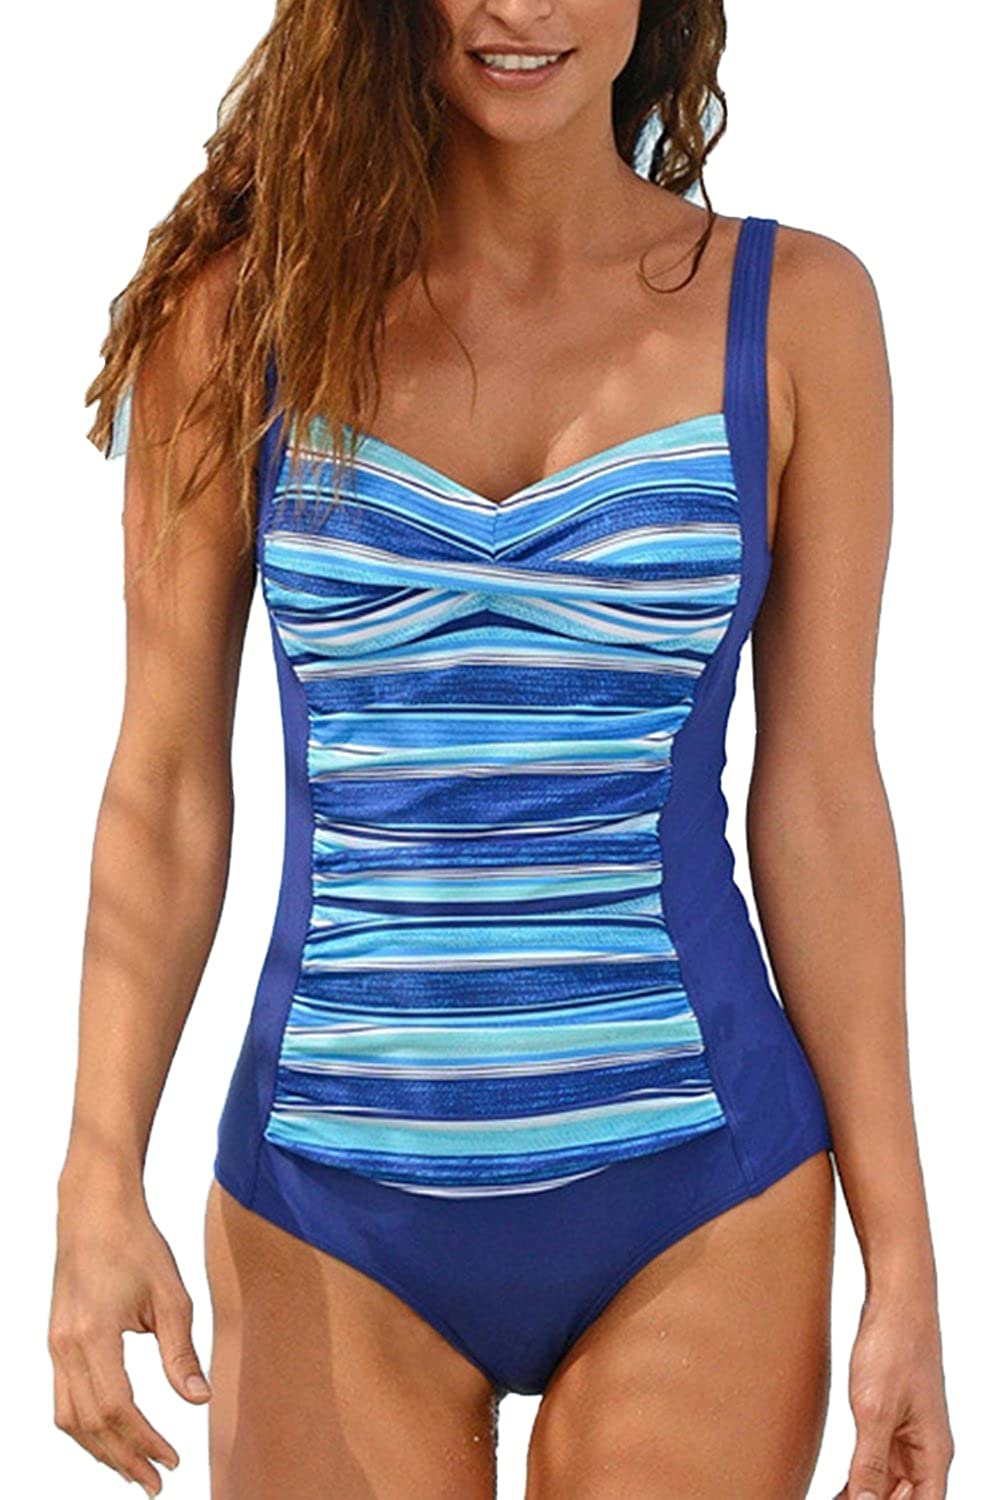 WIWIQS Summer One Piece Twist Tummy Control Swimsuit Padded Swimwear C-ZZHUAHUA